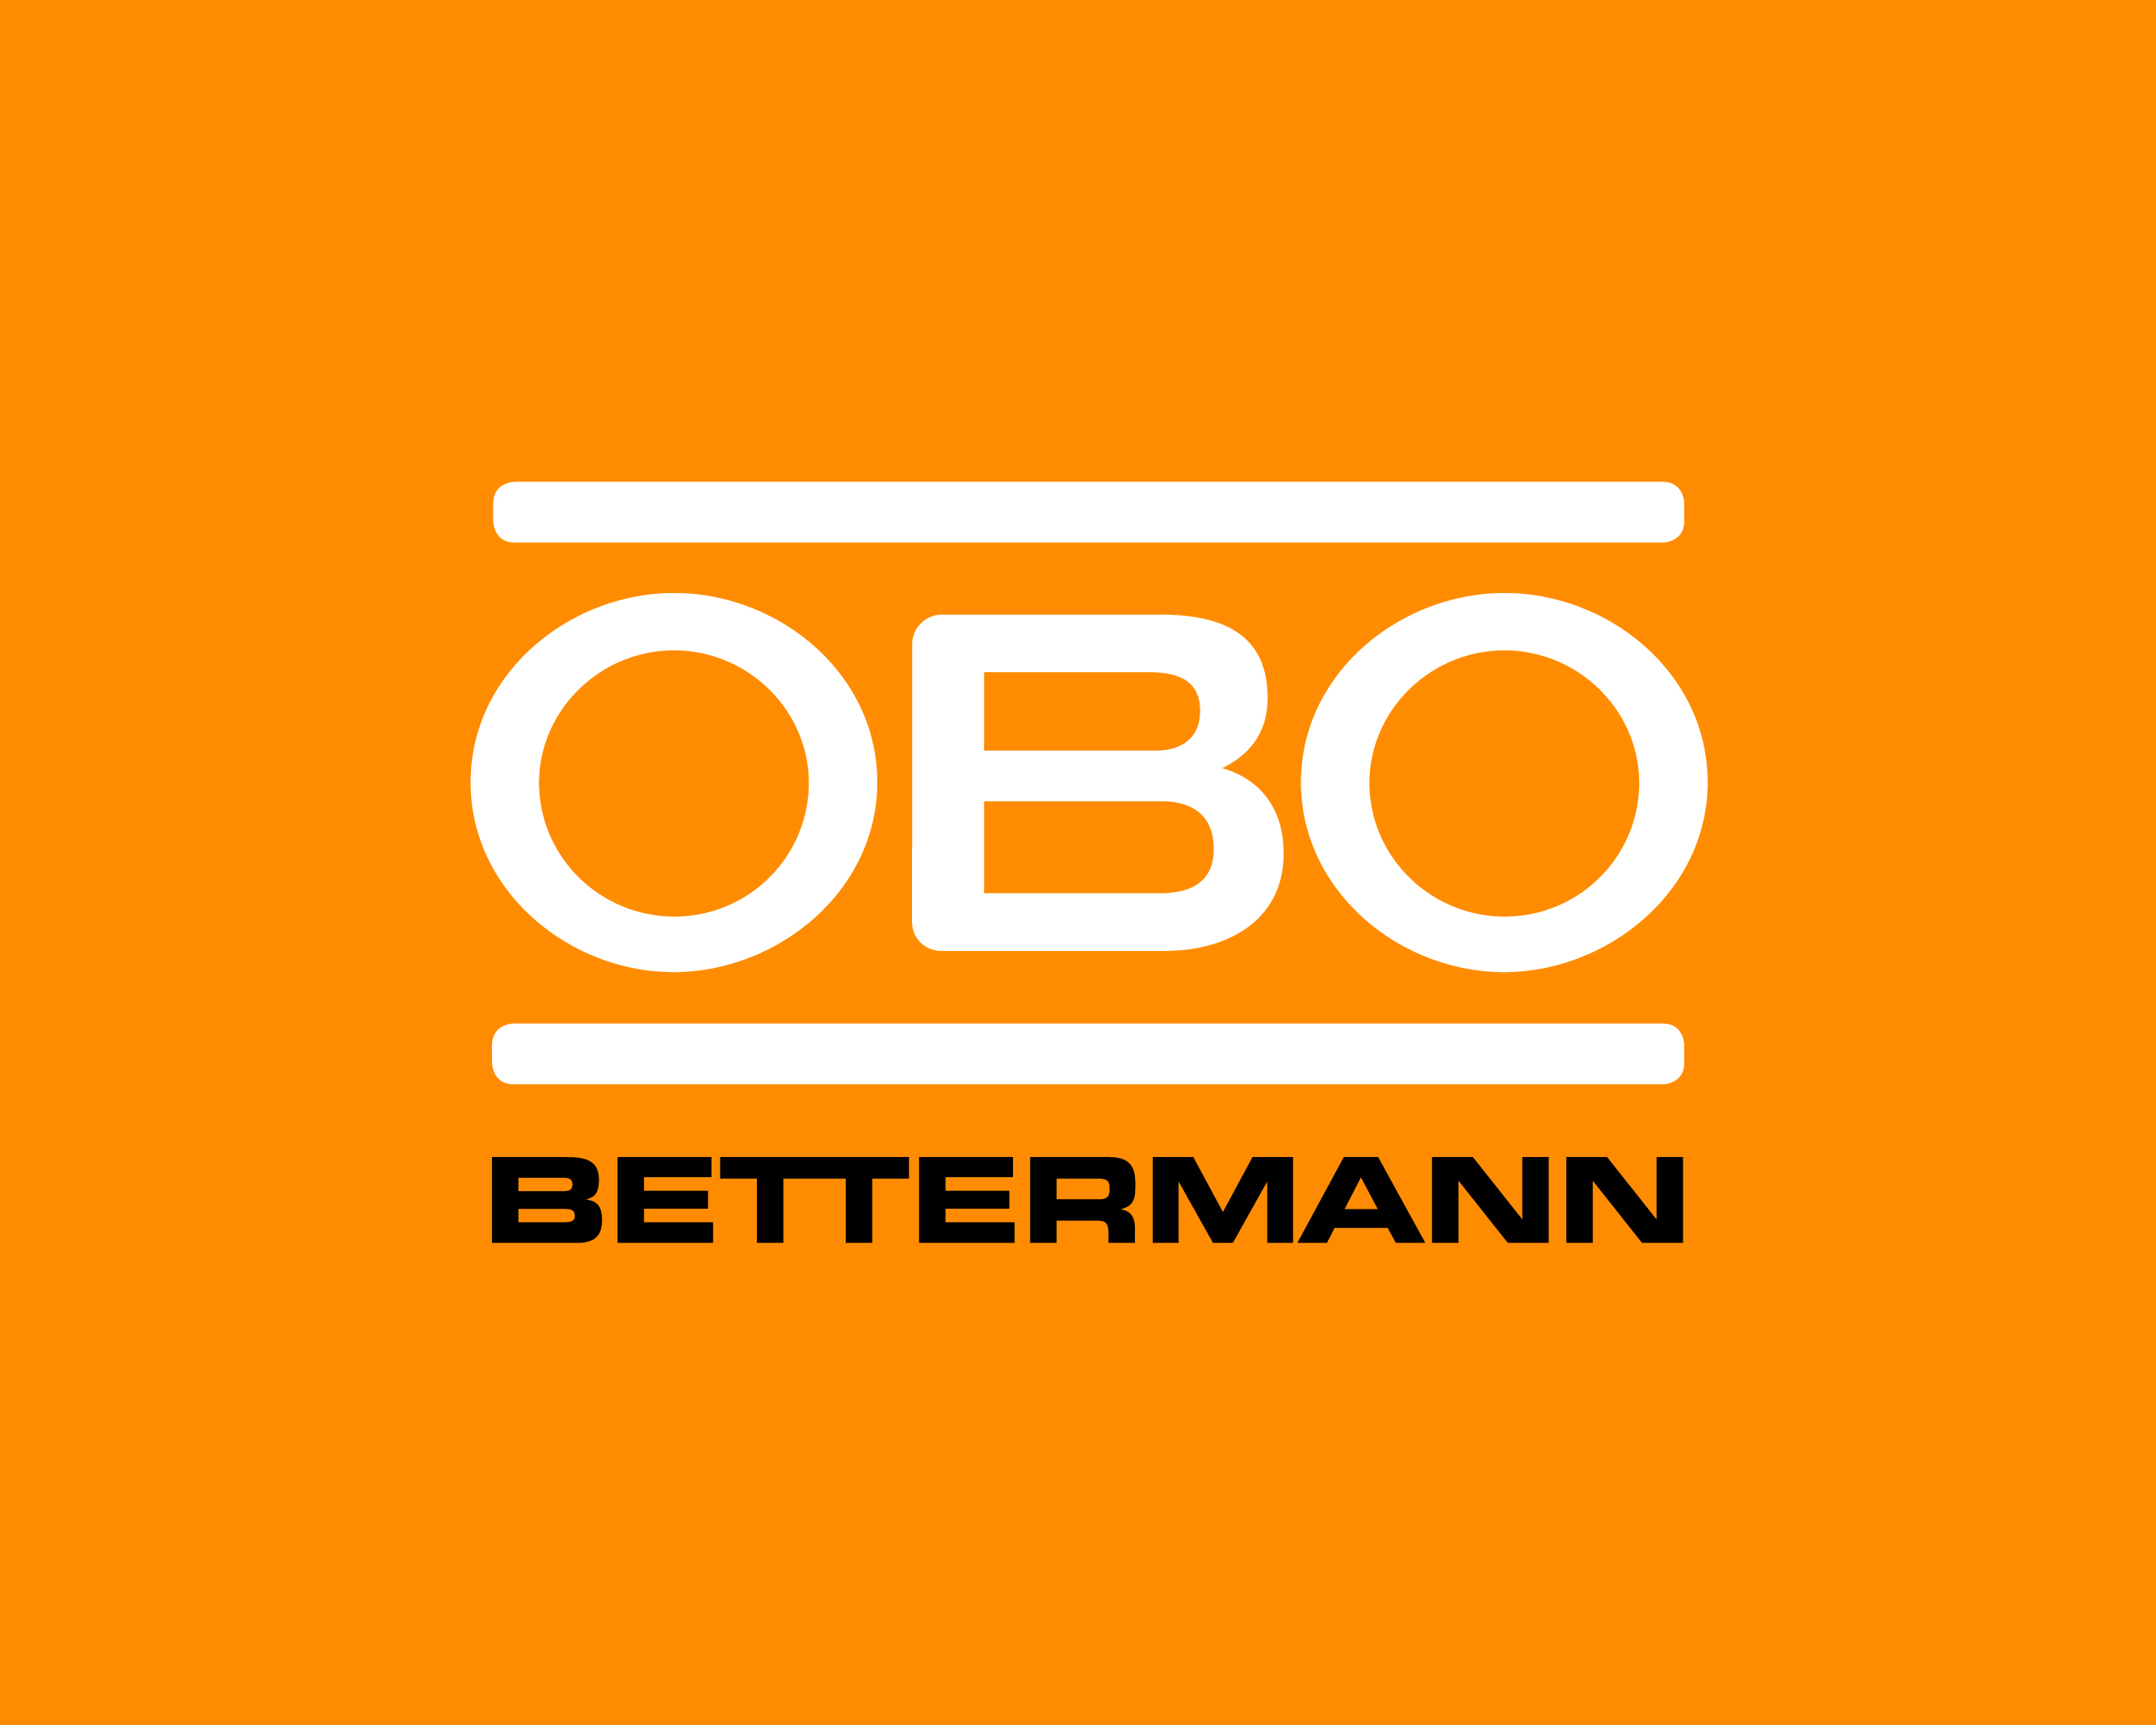 Obo Bettermann Gmbh Amp Co Kg Archello